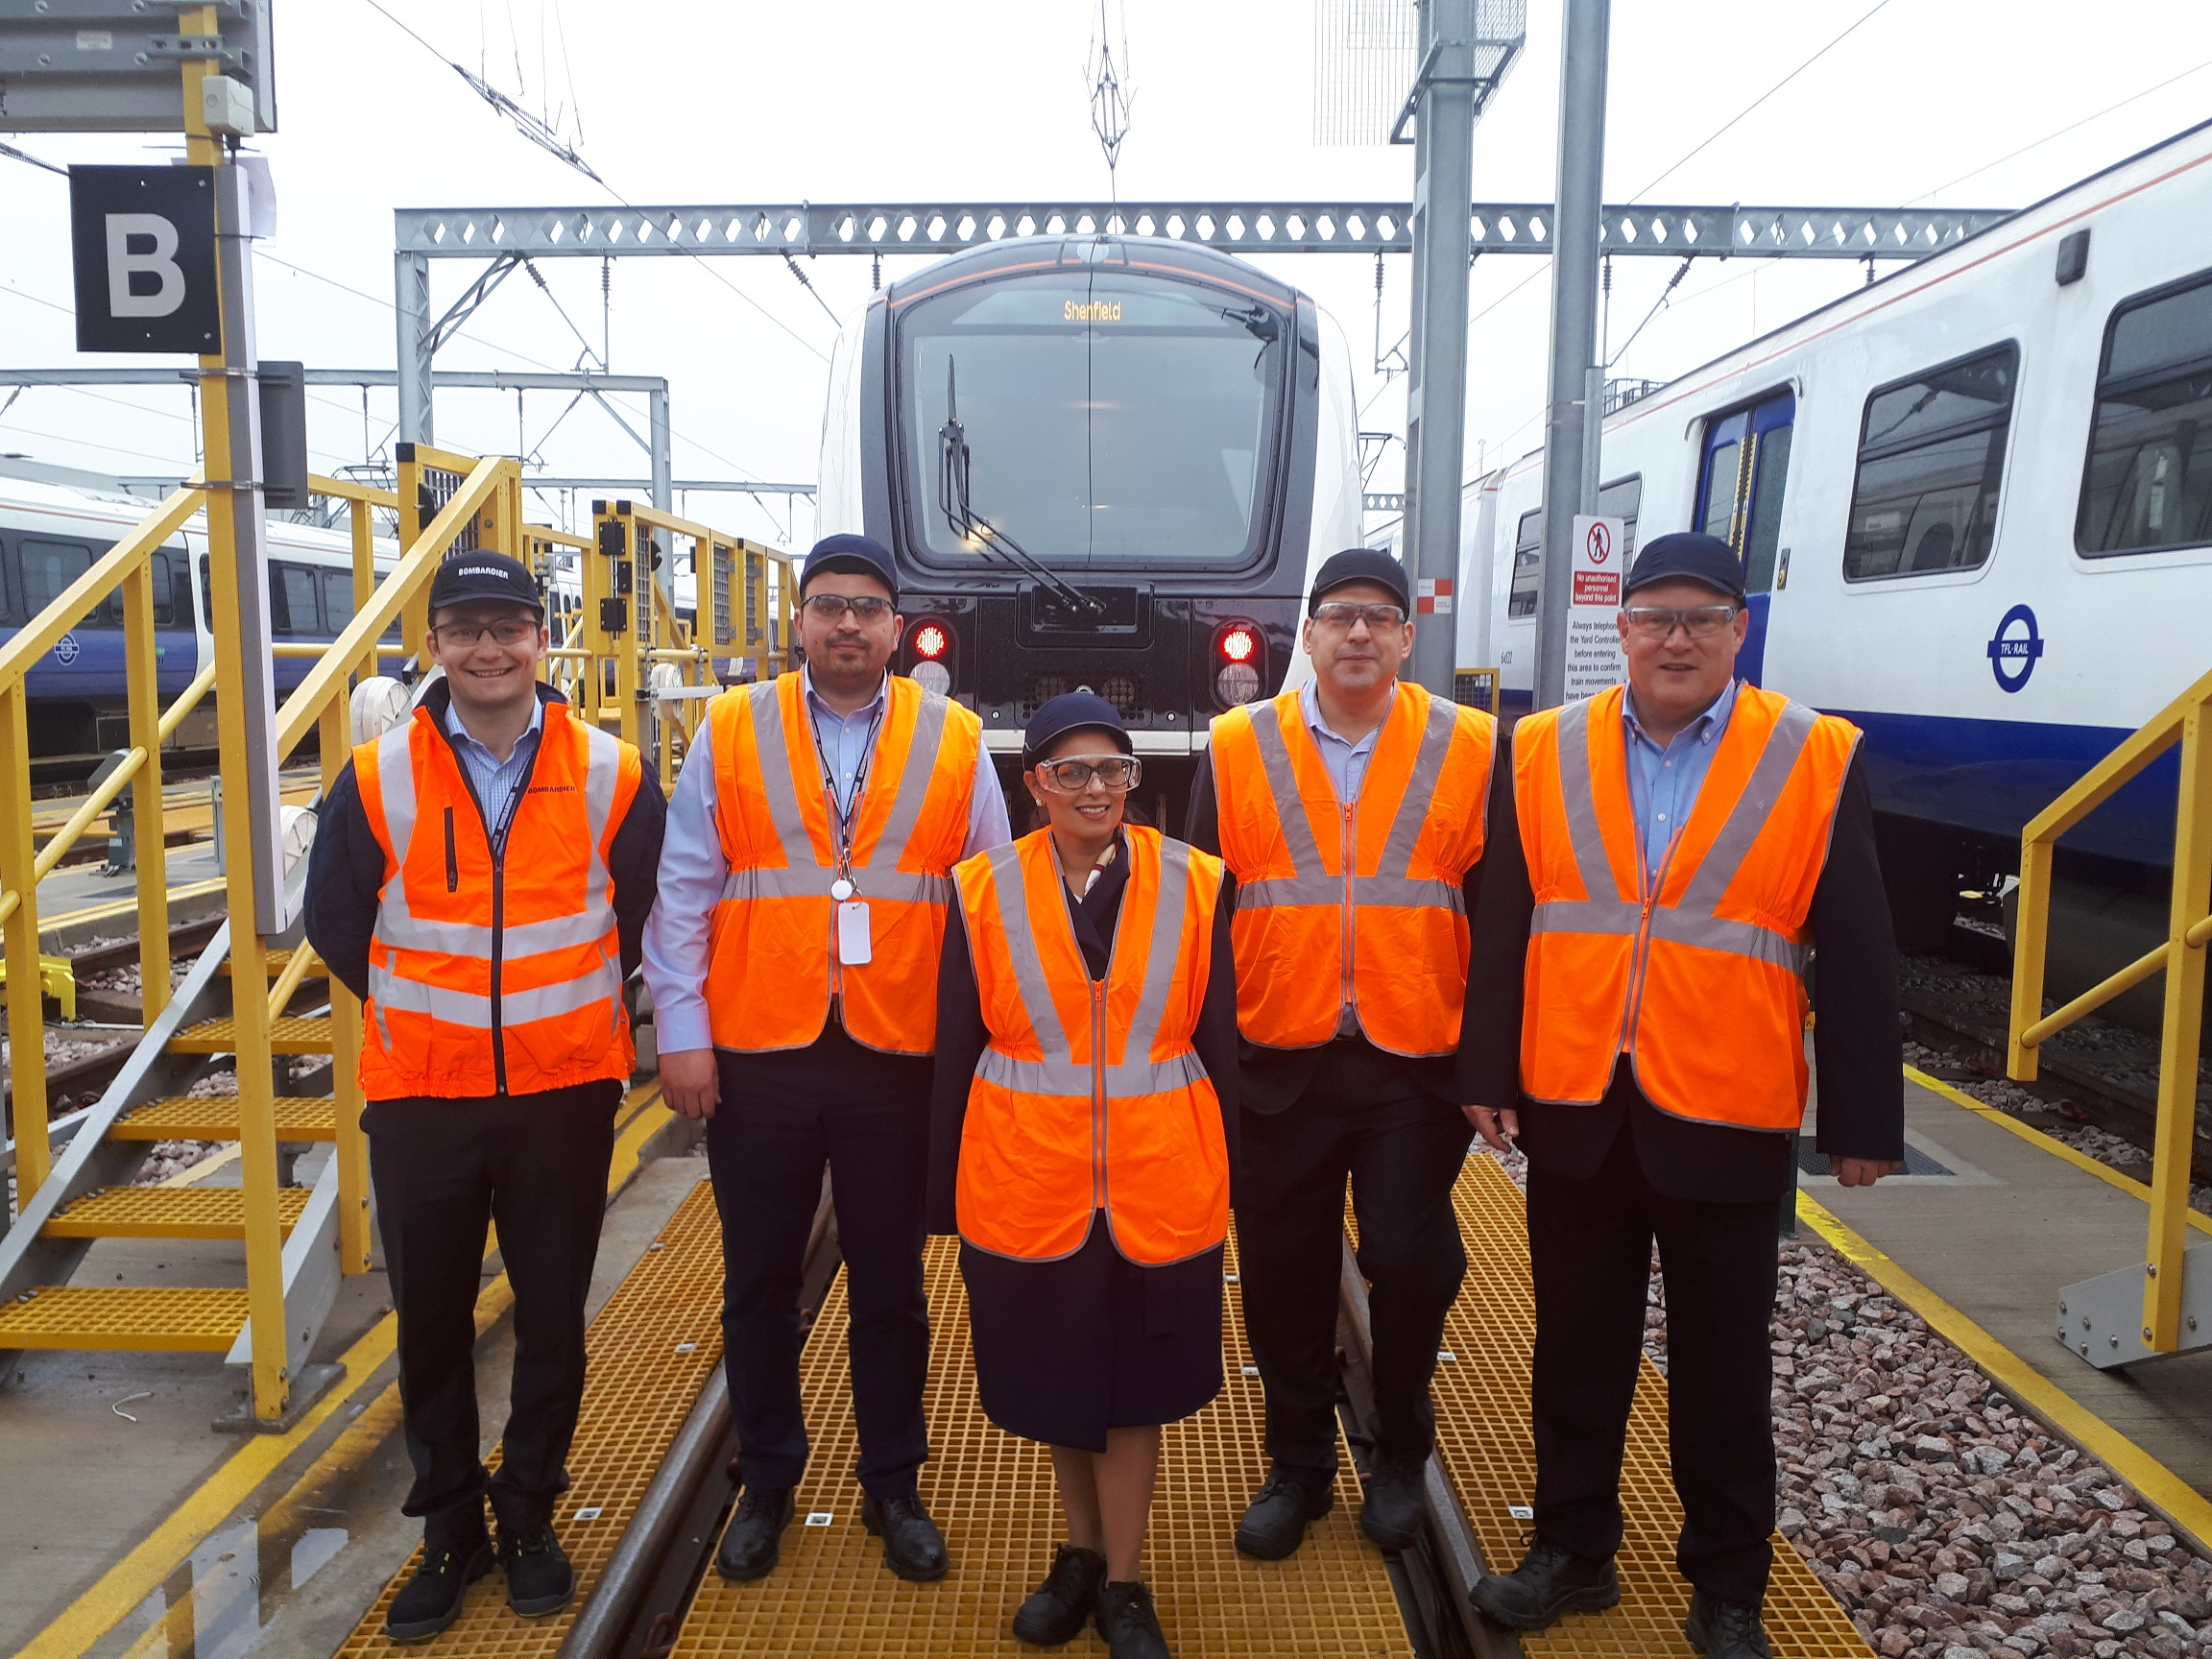 Priti Patel becomes latest Rail Fellow after hands-on day on